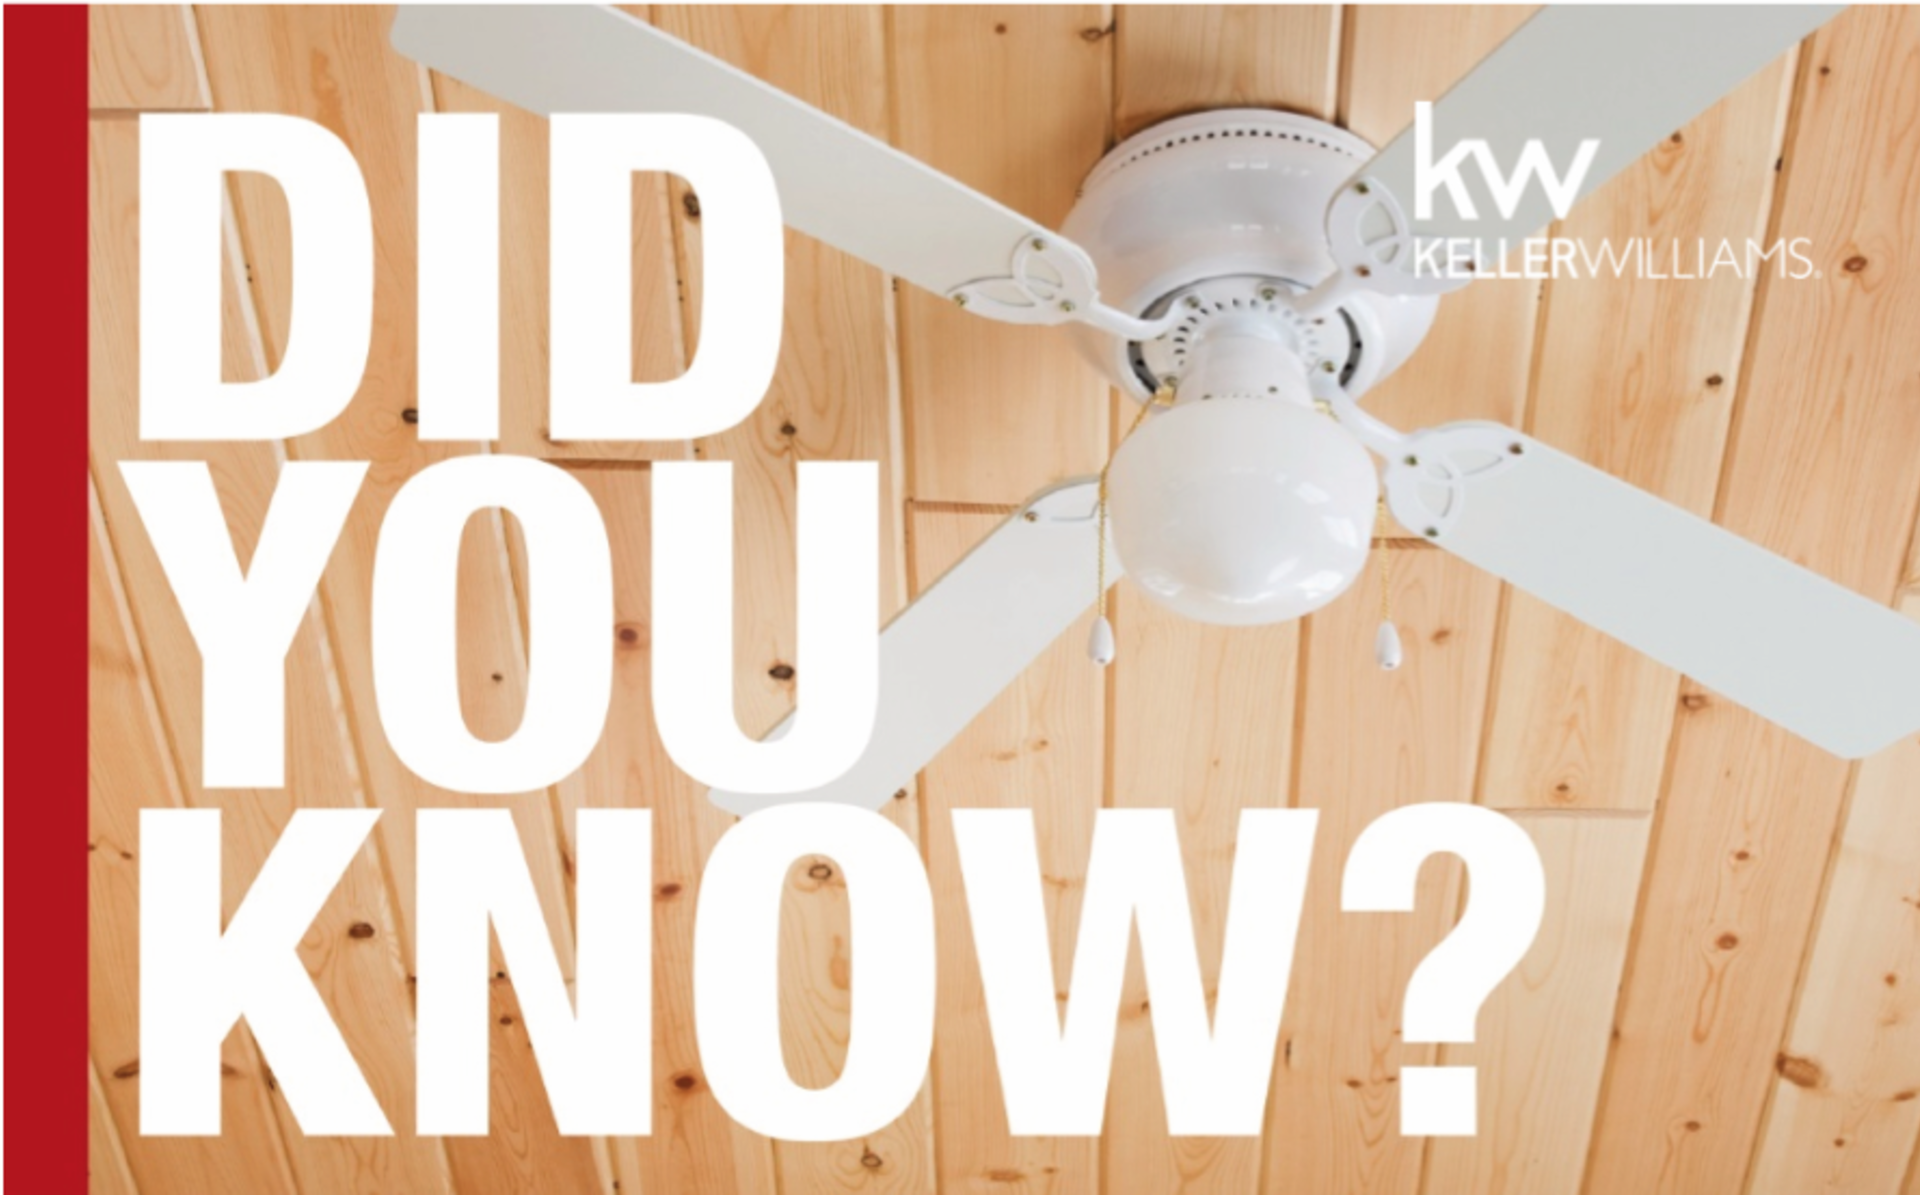 Did you know? Ceiling fans save money!